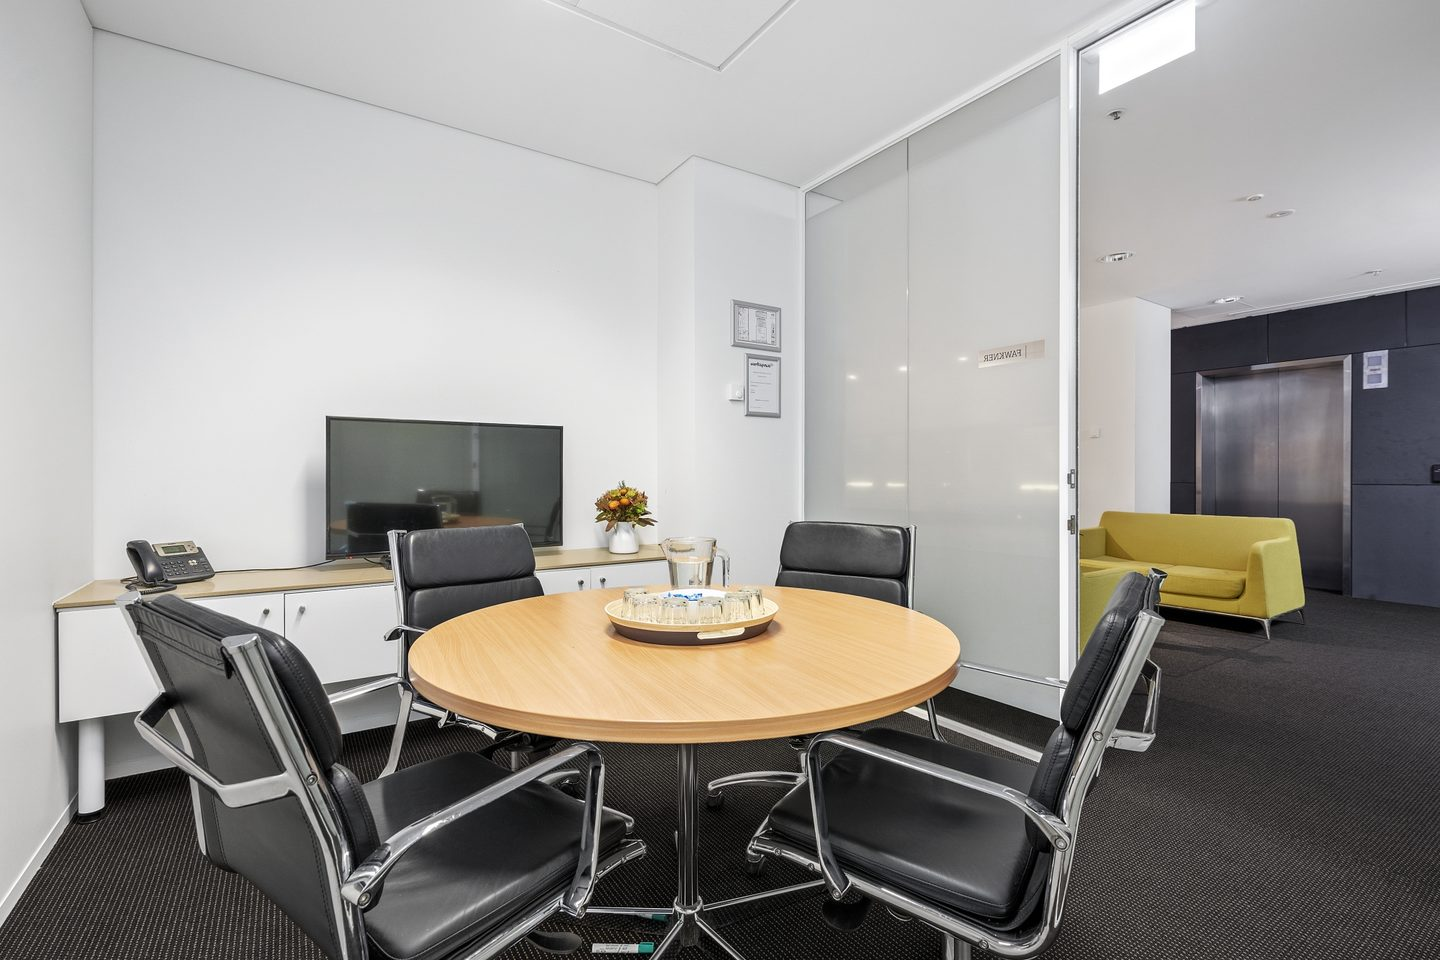 Fawkner Meeting Room